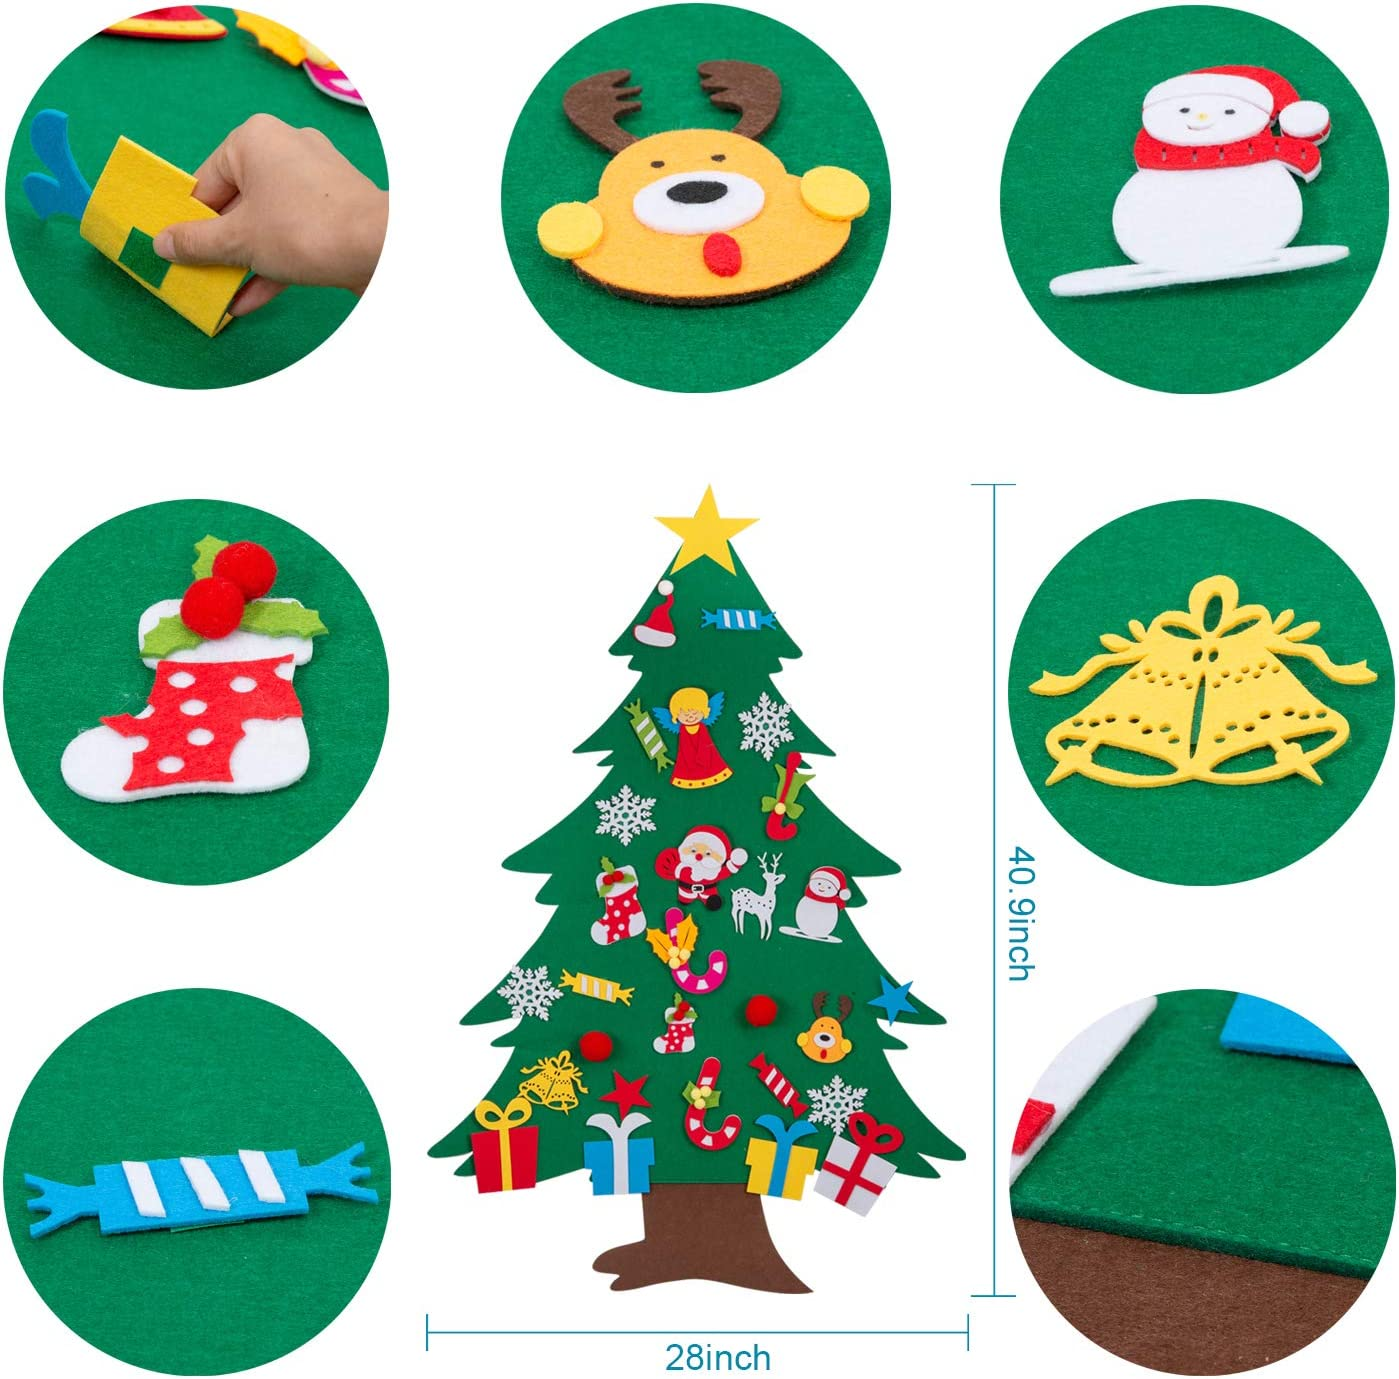 YOHEER DIY Felt Christmas Tree 3.57ft DIY Christmas Tree with 26 Pcs Xmas Gifts Santa Claus Ornaments Wall Decor with Hanging Rope for Home Door Decoration